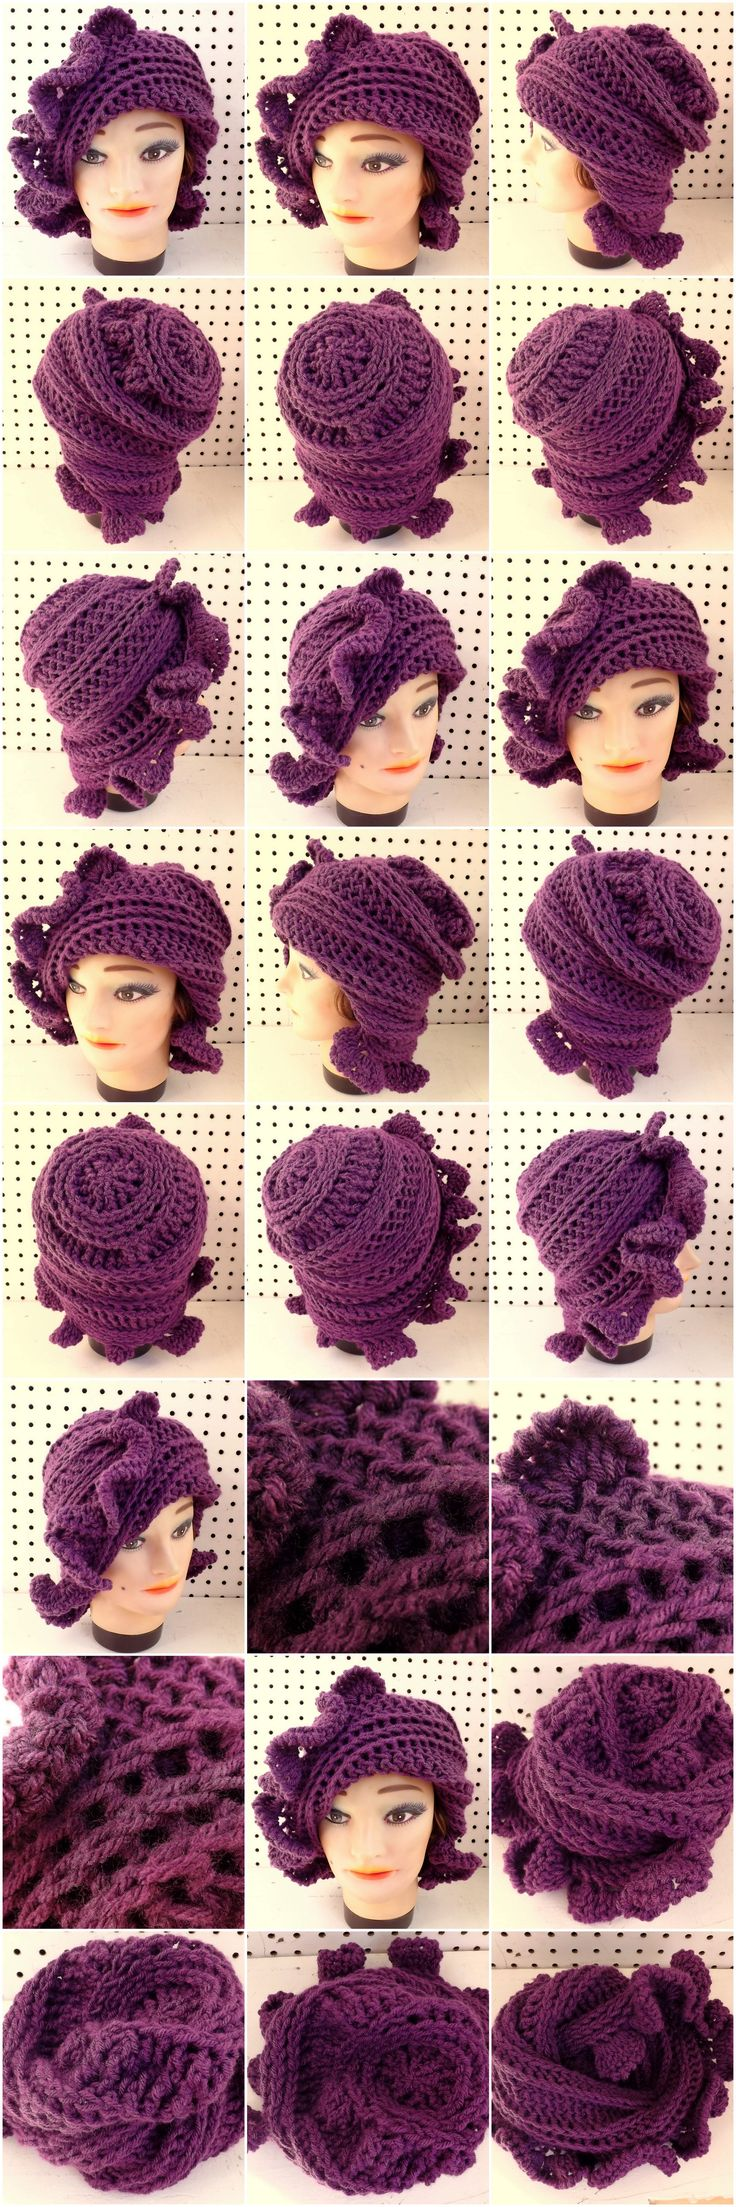 CYNTHIA Crochet Beanie Hat in Mixed Berry Purple